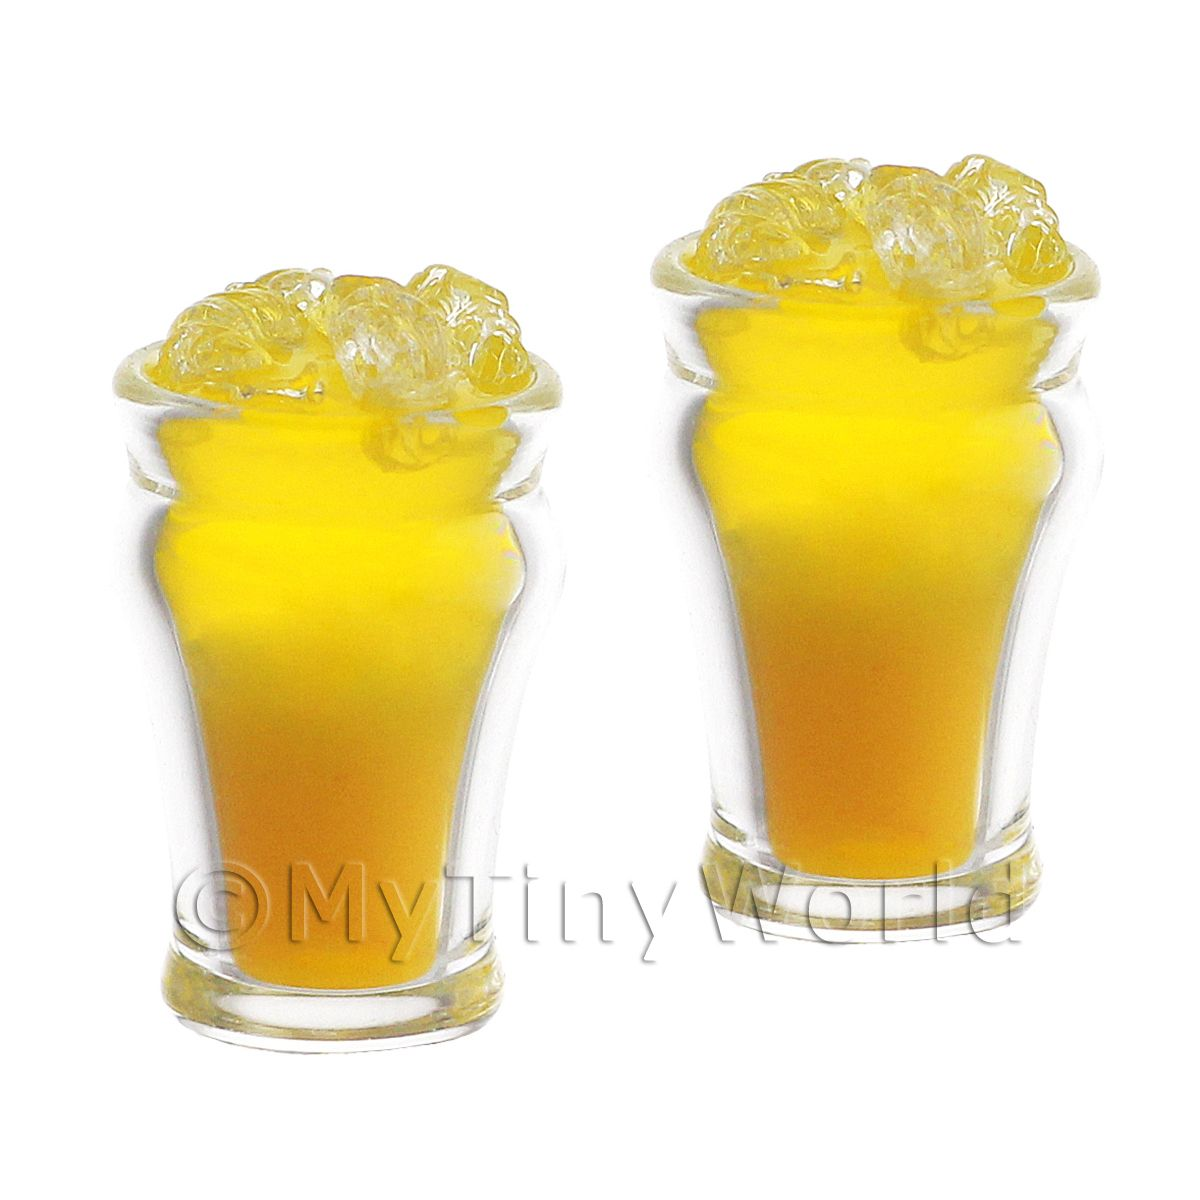 2 Miniature Mambo Cocktails On Ice served in a Hand Made Glasses